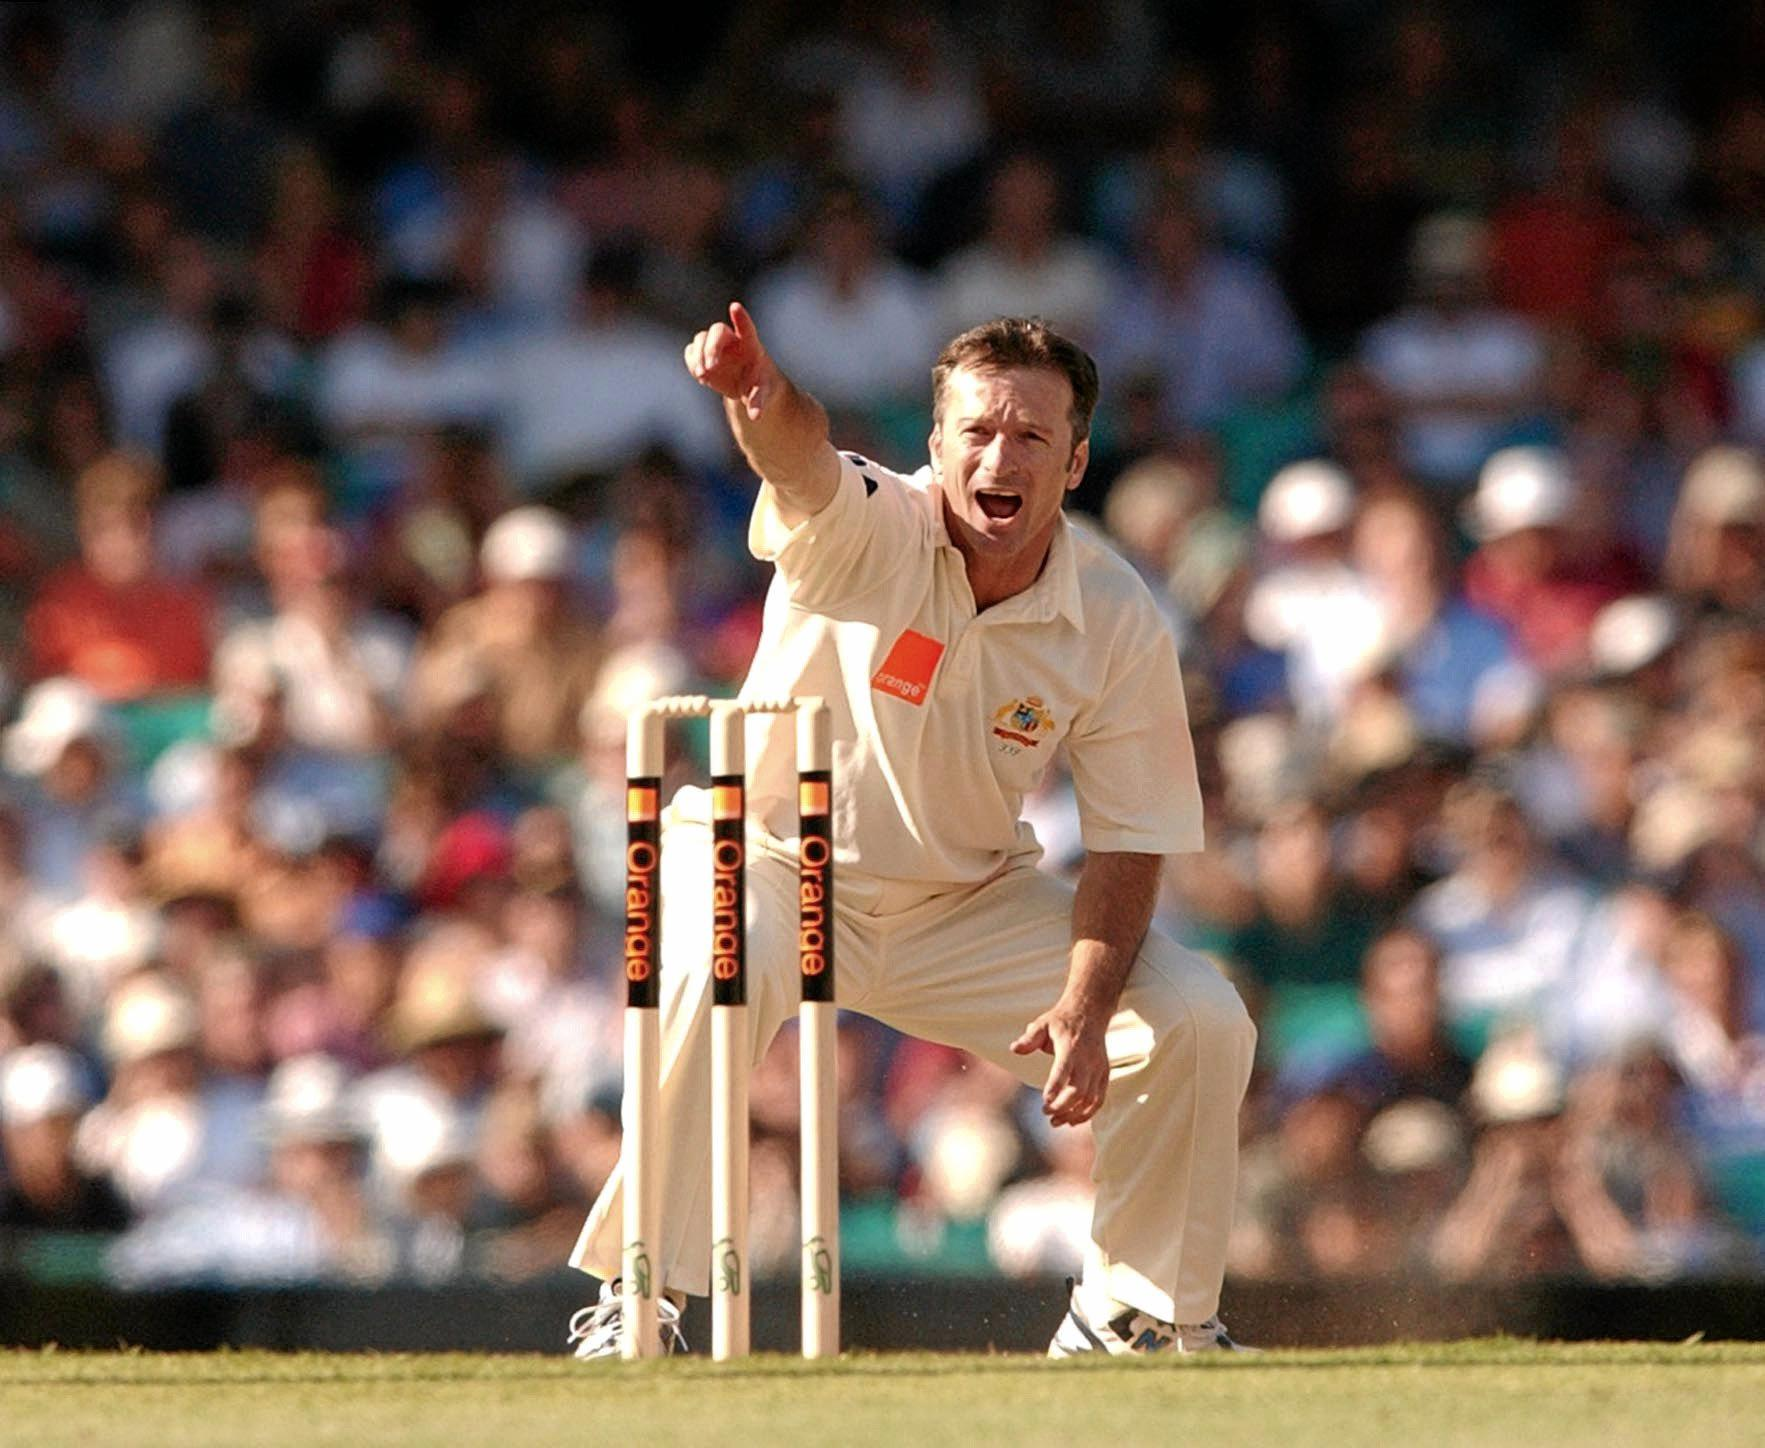 Sydney, December 2, 2002. Australian captain Steve Waugh appeals to the umpire for the wicket of Englands Robert Key during day 1 of the 5th Ashes test at the SCG. (AAP Image/Dean Lewins) NO ARCHIVING